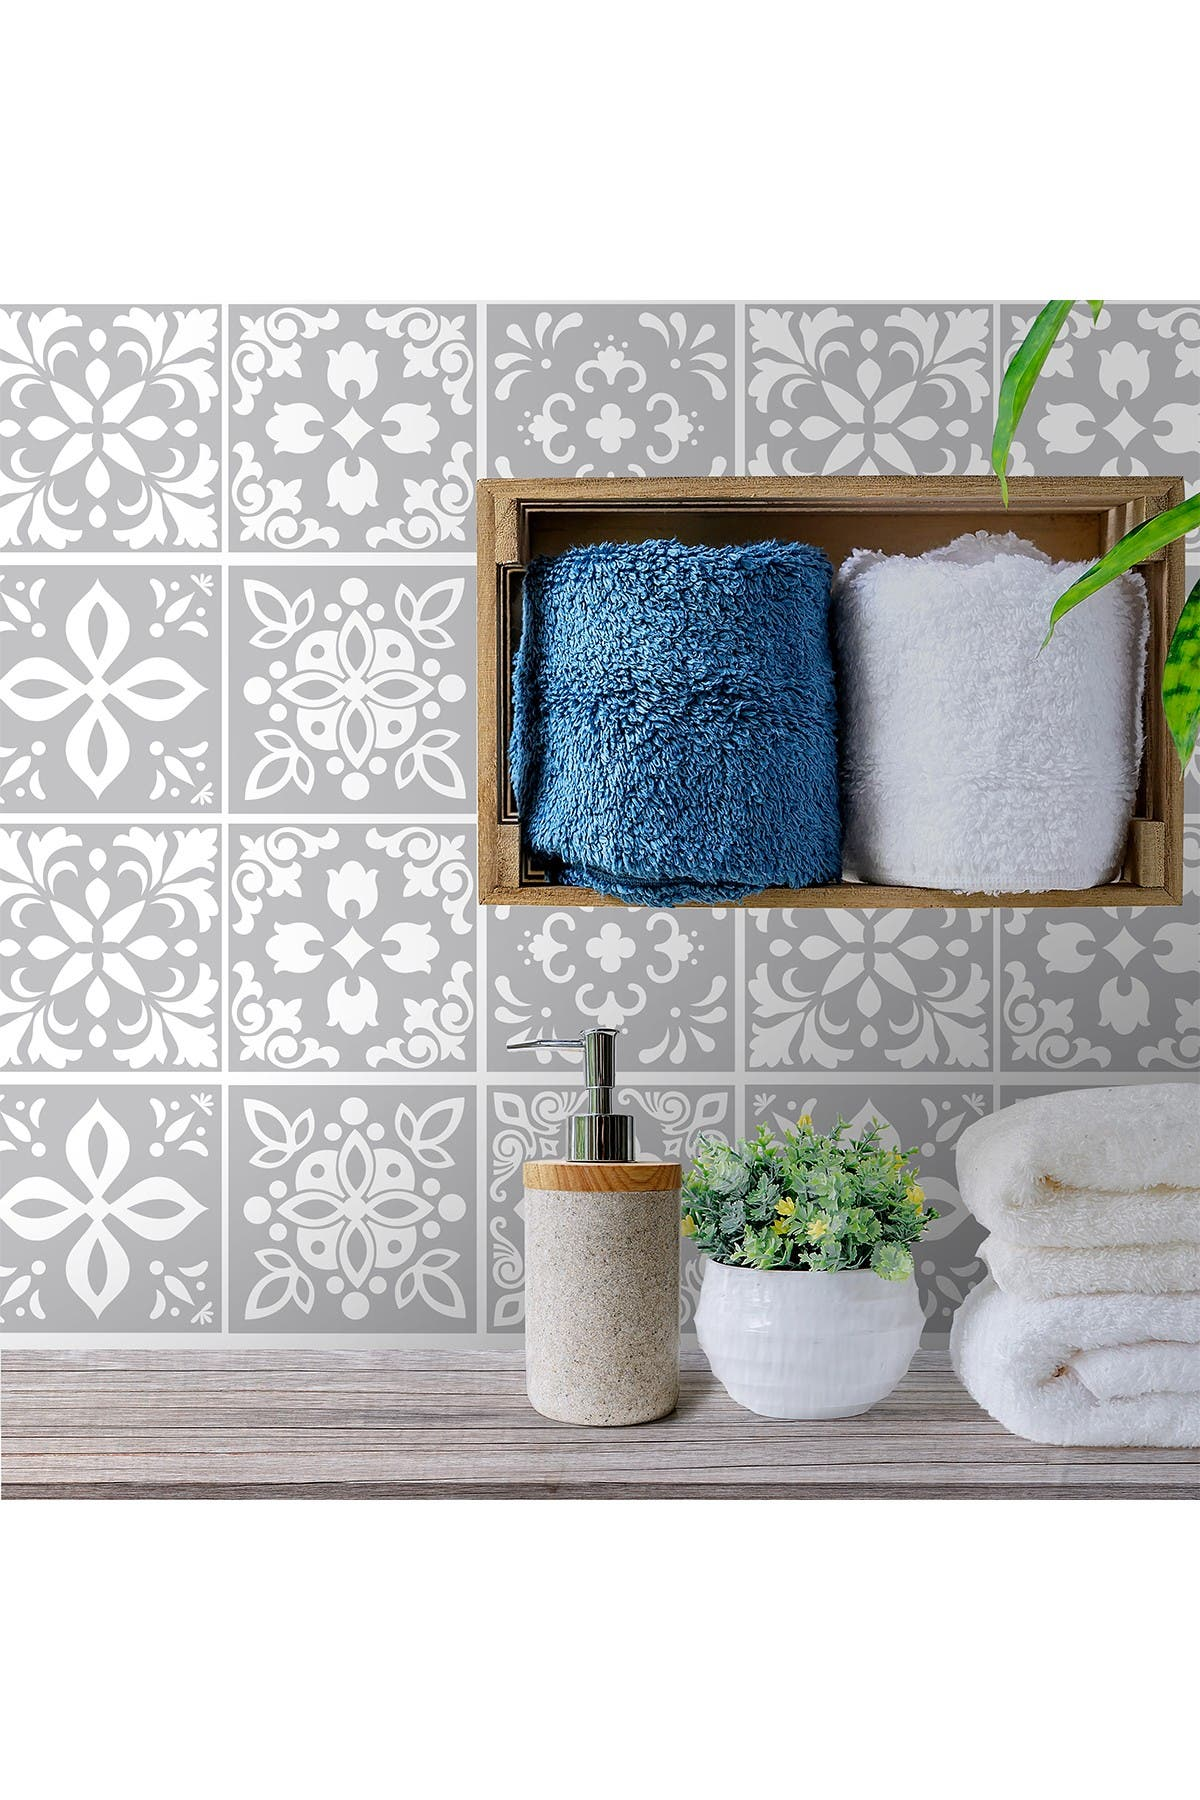 Image of WalPlus Andalu Light Grey Cement Spanish Wall Tile Sticker Set - 6 x 6 in - 24 Pieces